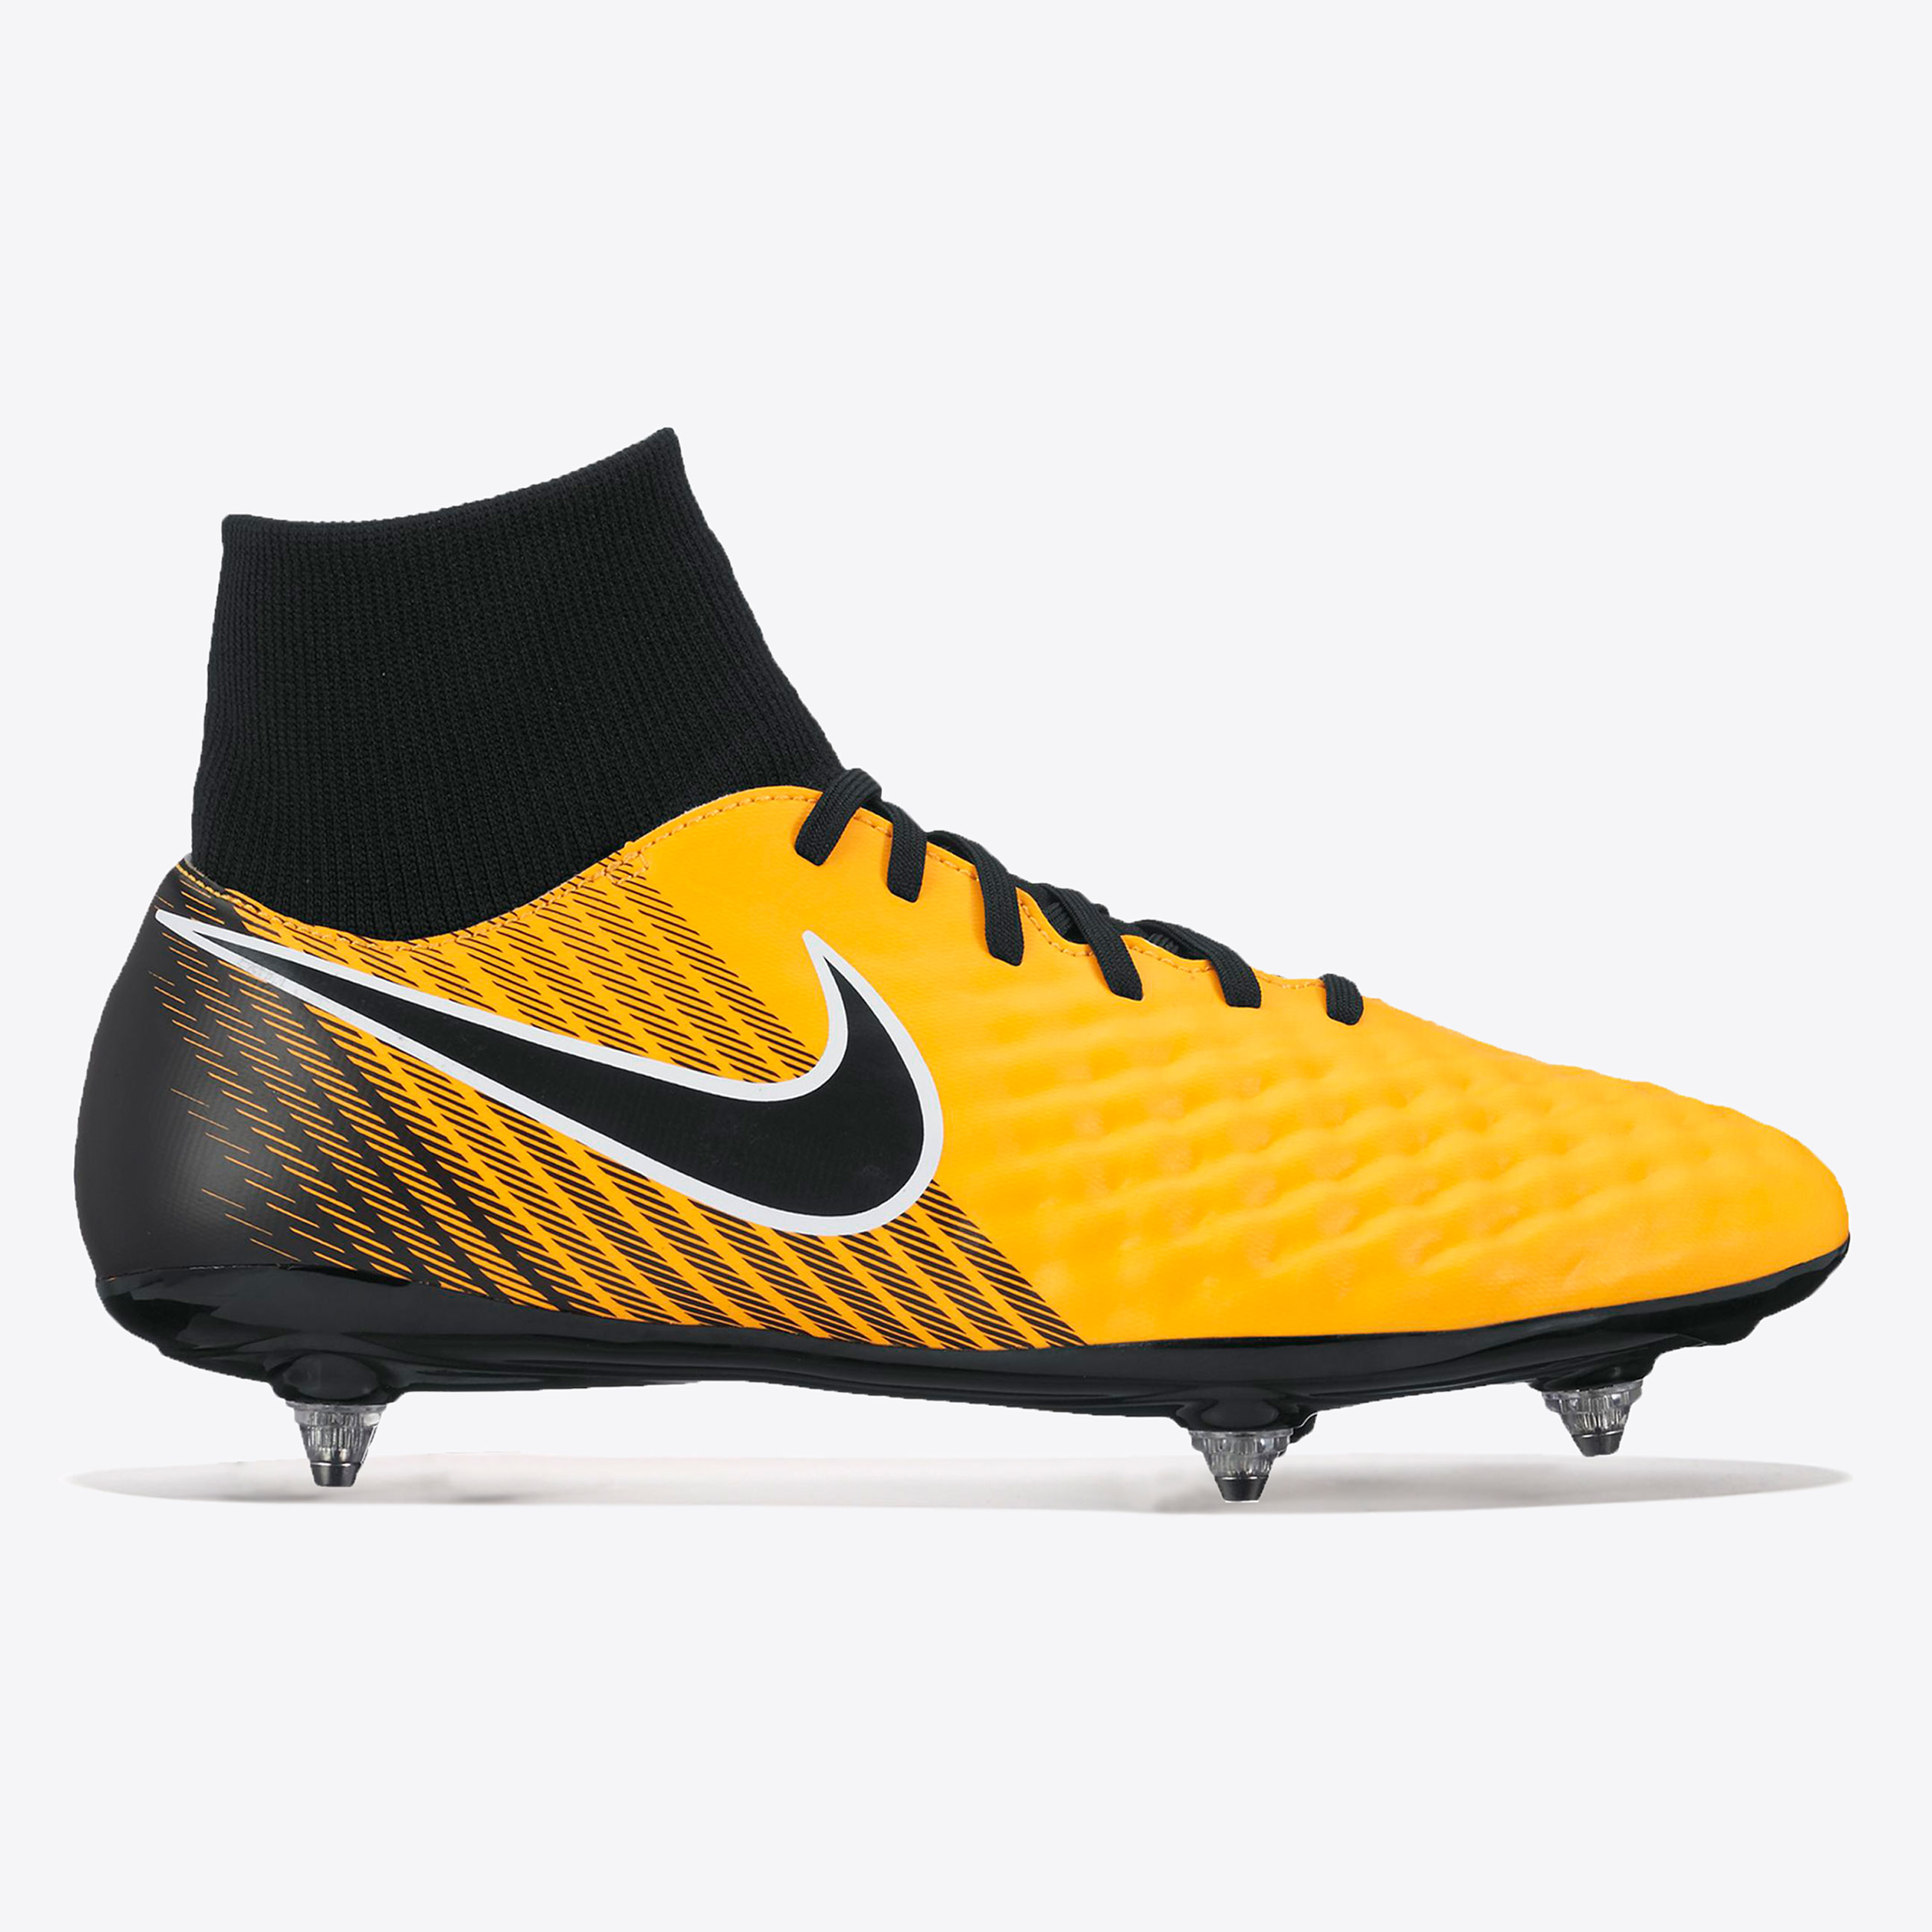 Nike Magista Onda II Dynamic Fit Soft Ground Football Boots - Laser Or